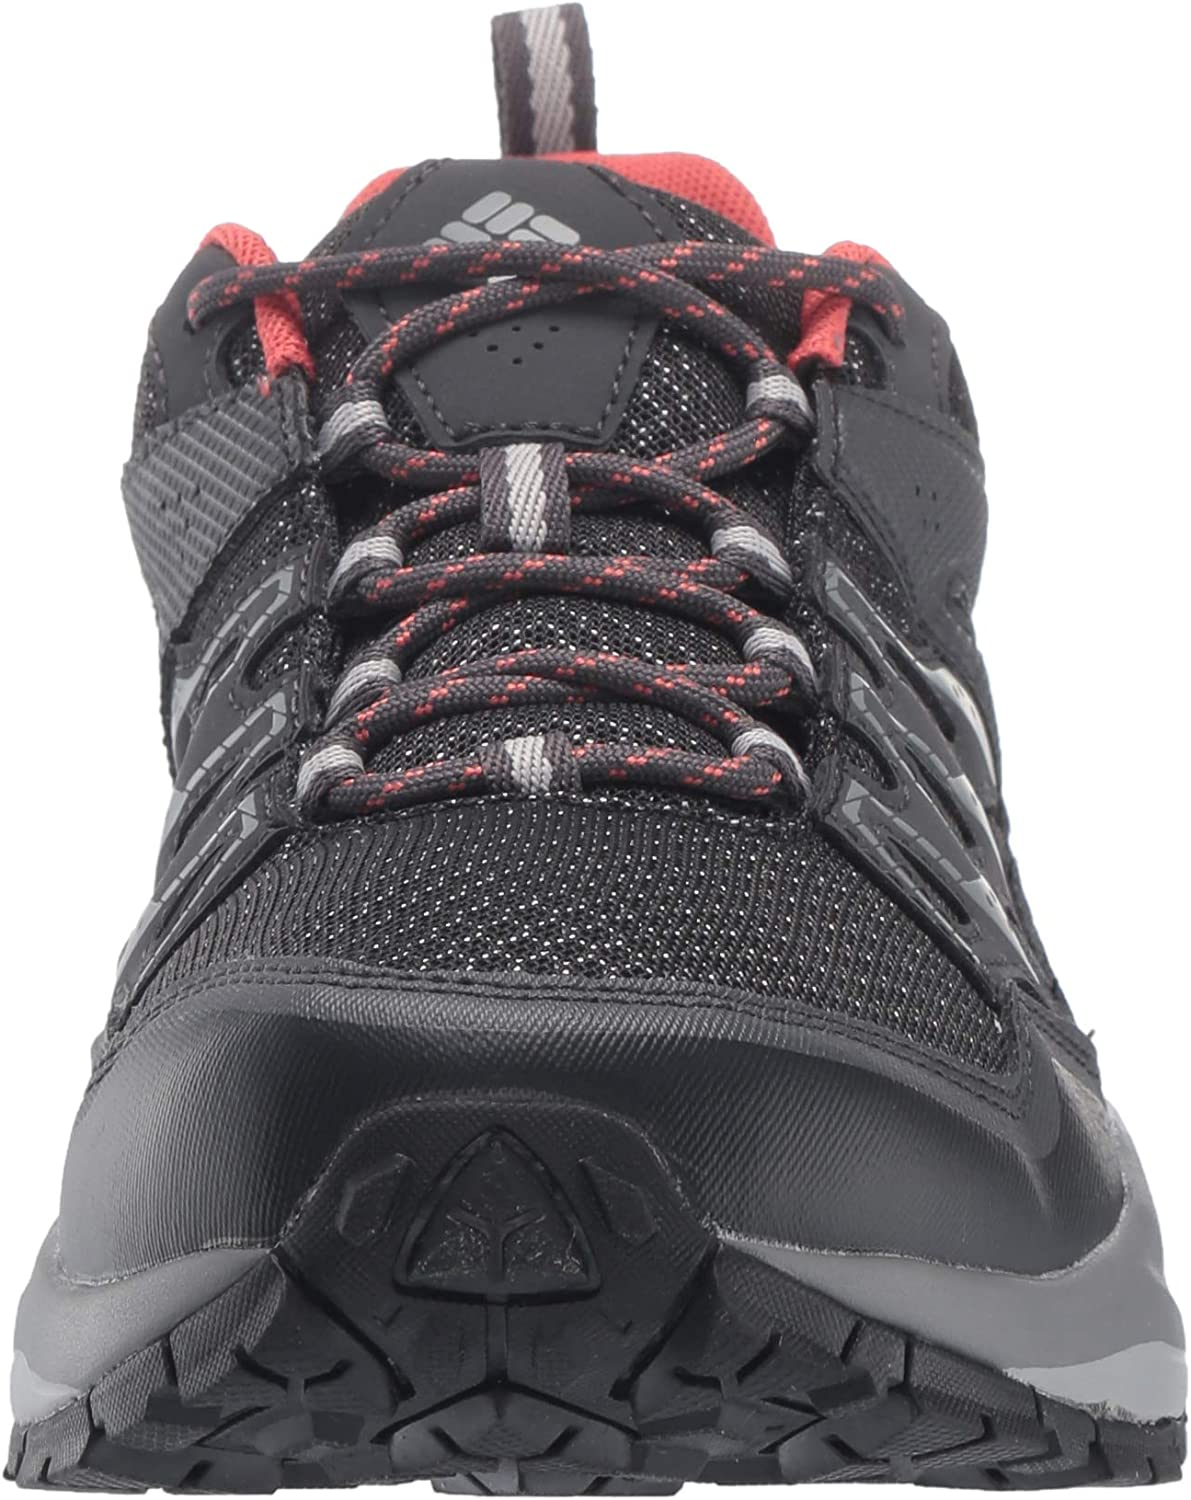 High-Traction Grip Breathable Columbia Womens Wayfinder Hiking Shoe